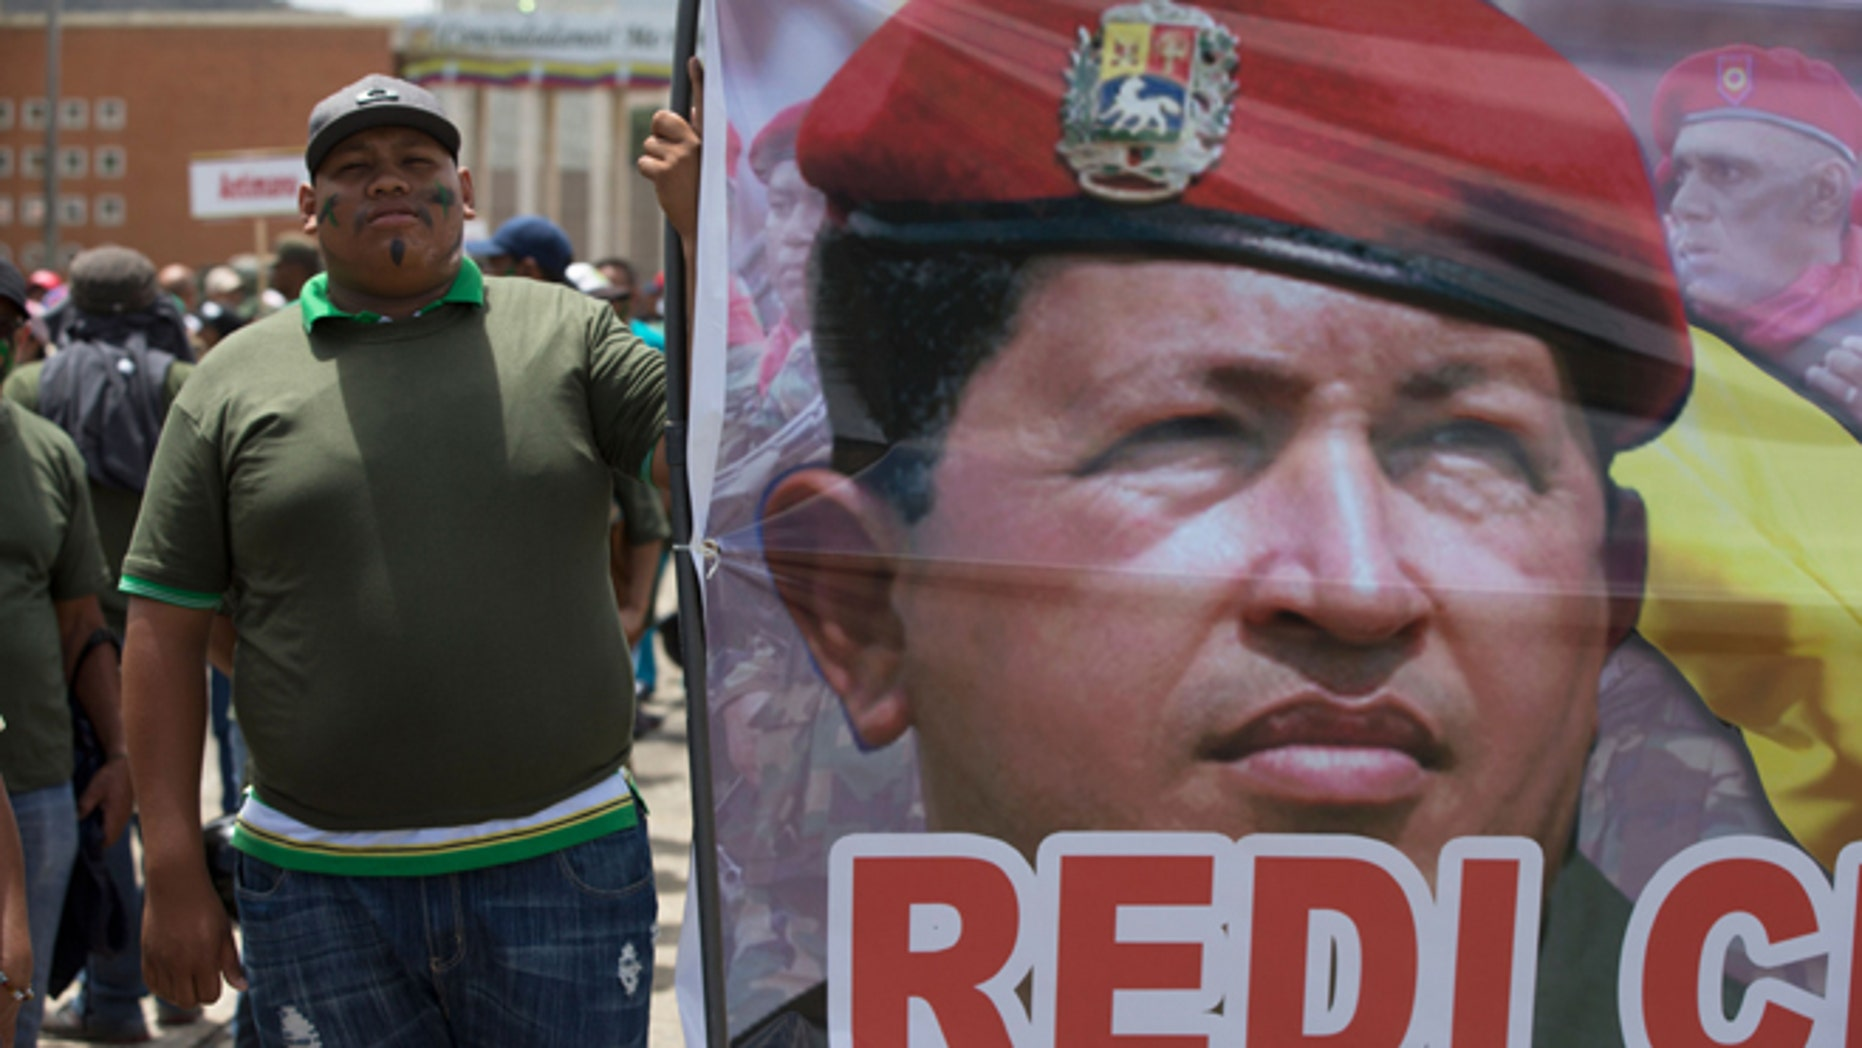 A supporters of Venezuela's President Nicolas Maduro stands next to a picture of Venezuela's late President Hugo Chavez prior a civilian and military exercise at fort Tiuna in Caracas, Venezuela, Saturday, March 14, 2015. President Maduro is expected to oversee military exercises across the country, which are intended to show the South American countryâs strength in the face of U.S. threats. (AP Photo/Fernando Llano)